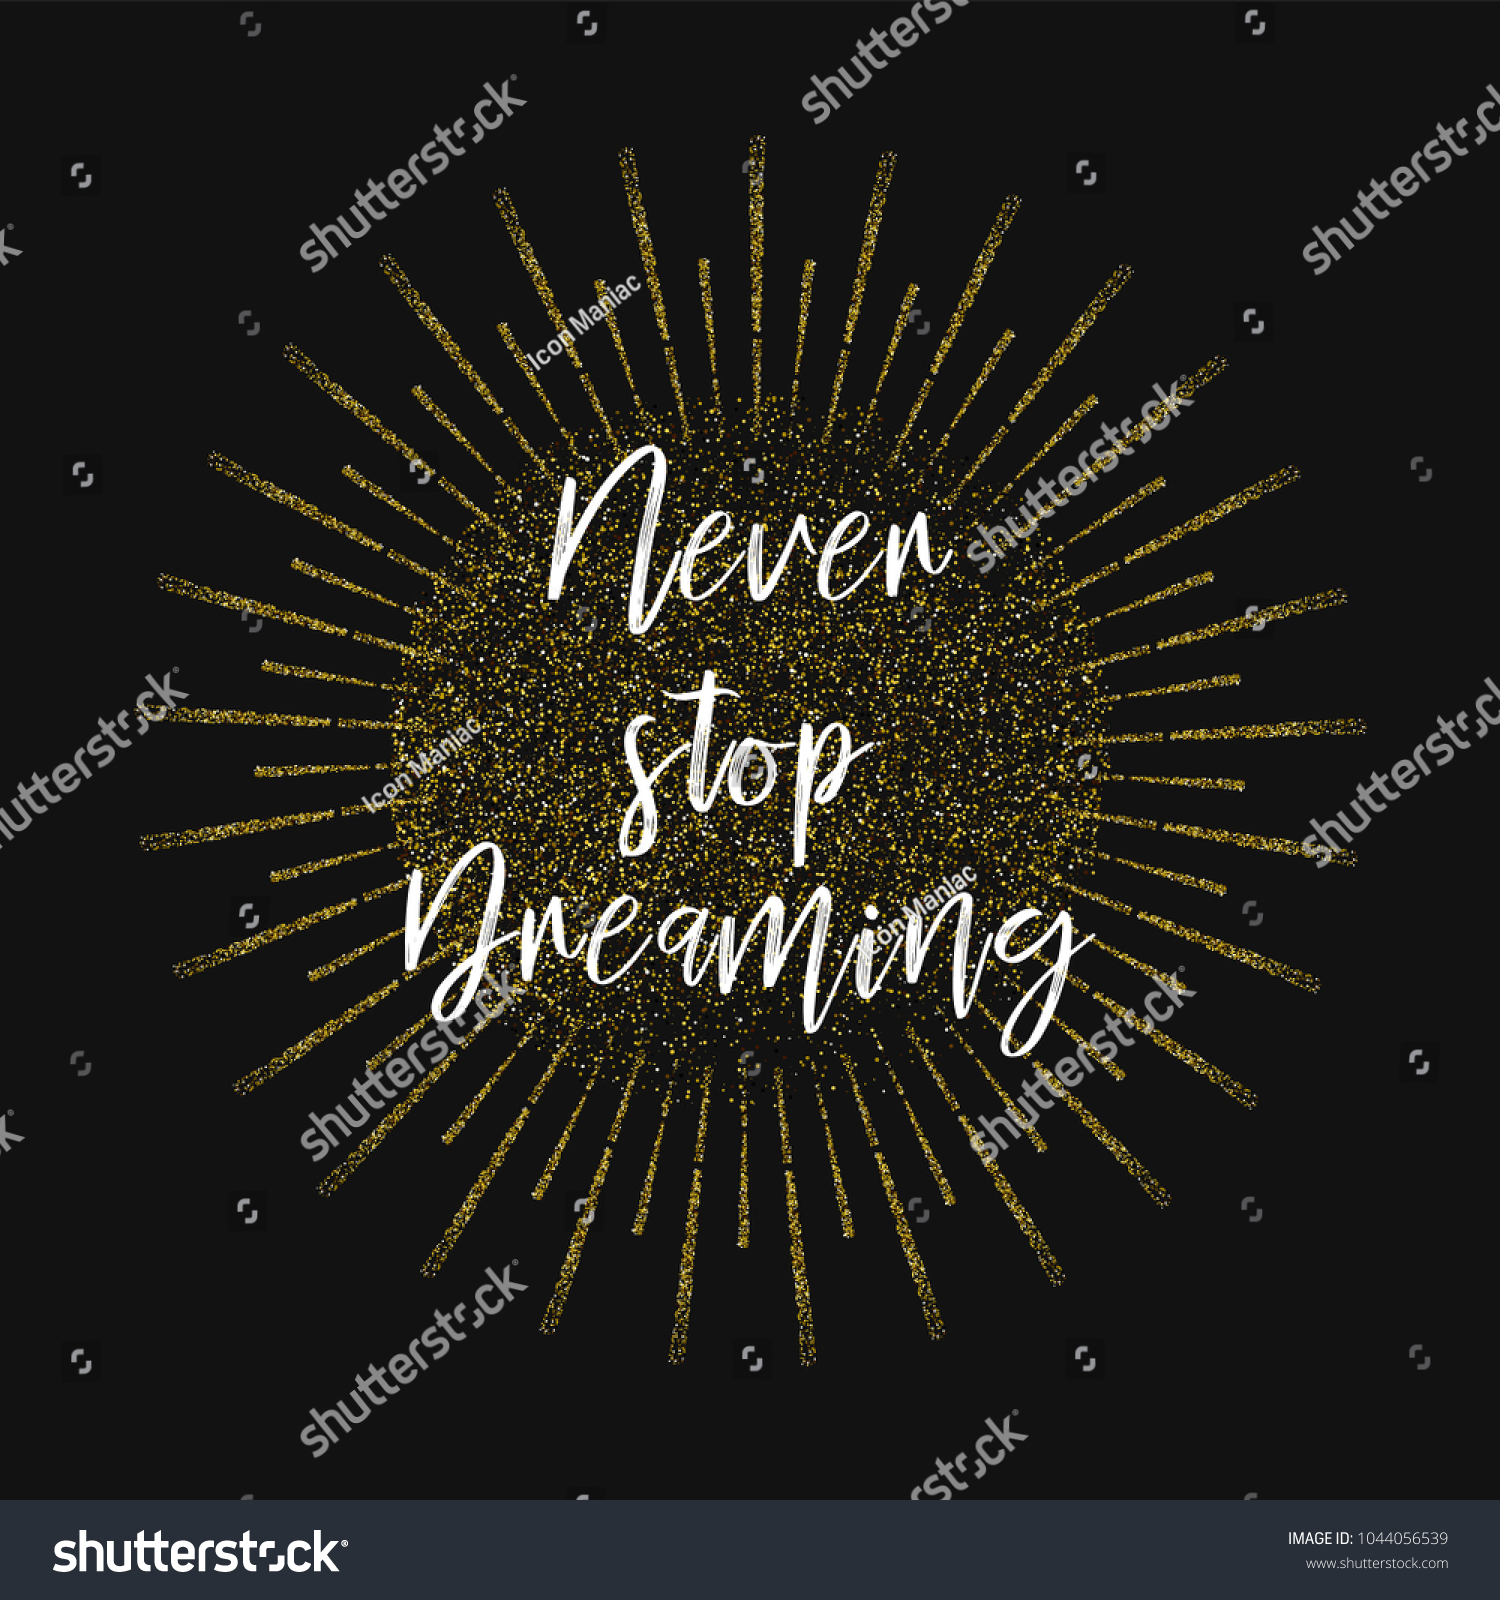 Never Stop Dreaming Inspirational Quotes About Stock Vector